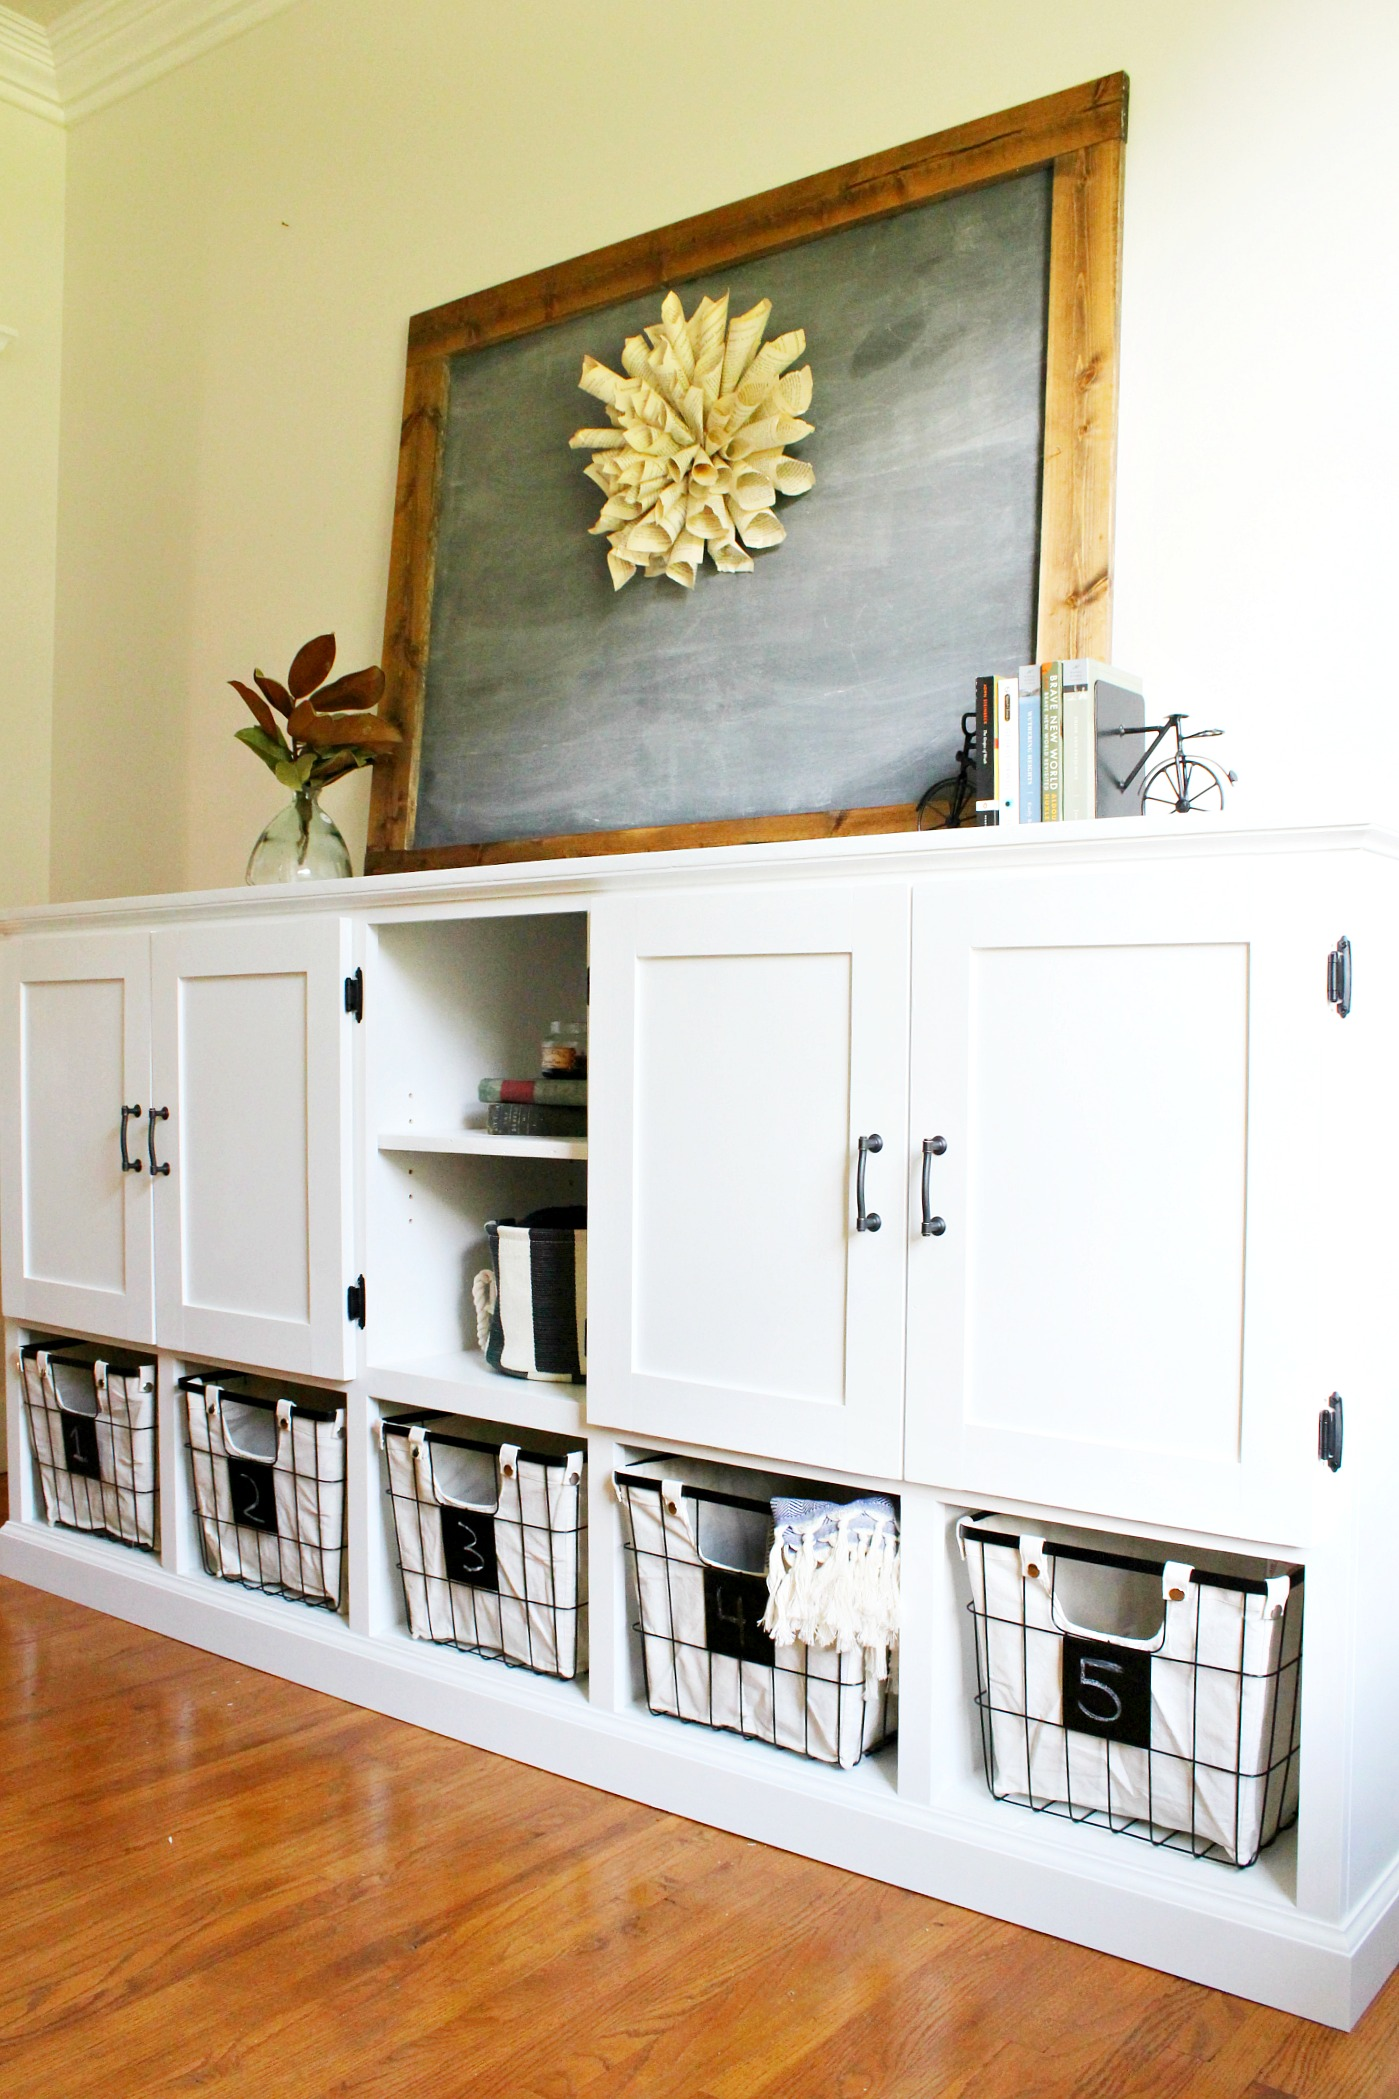 Diy Storage Console With Cabinets Shelves And Cubbies